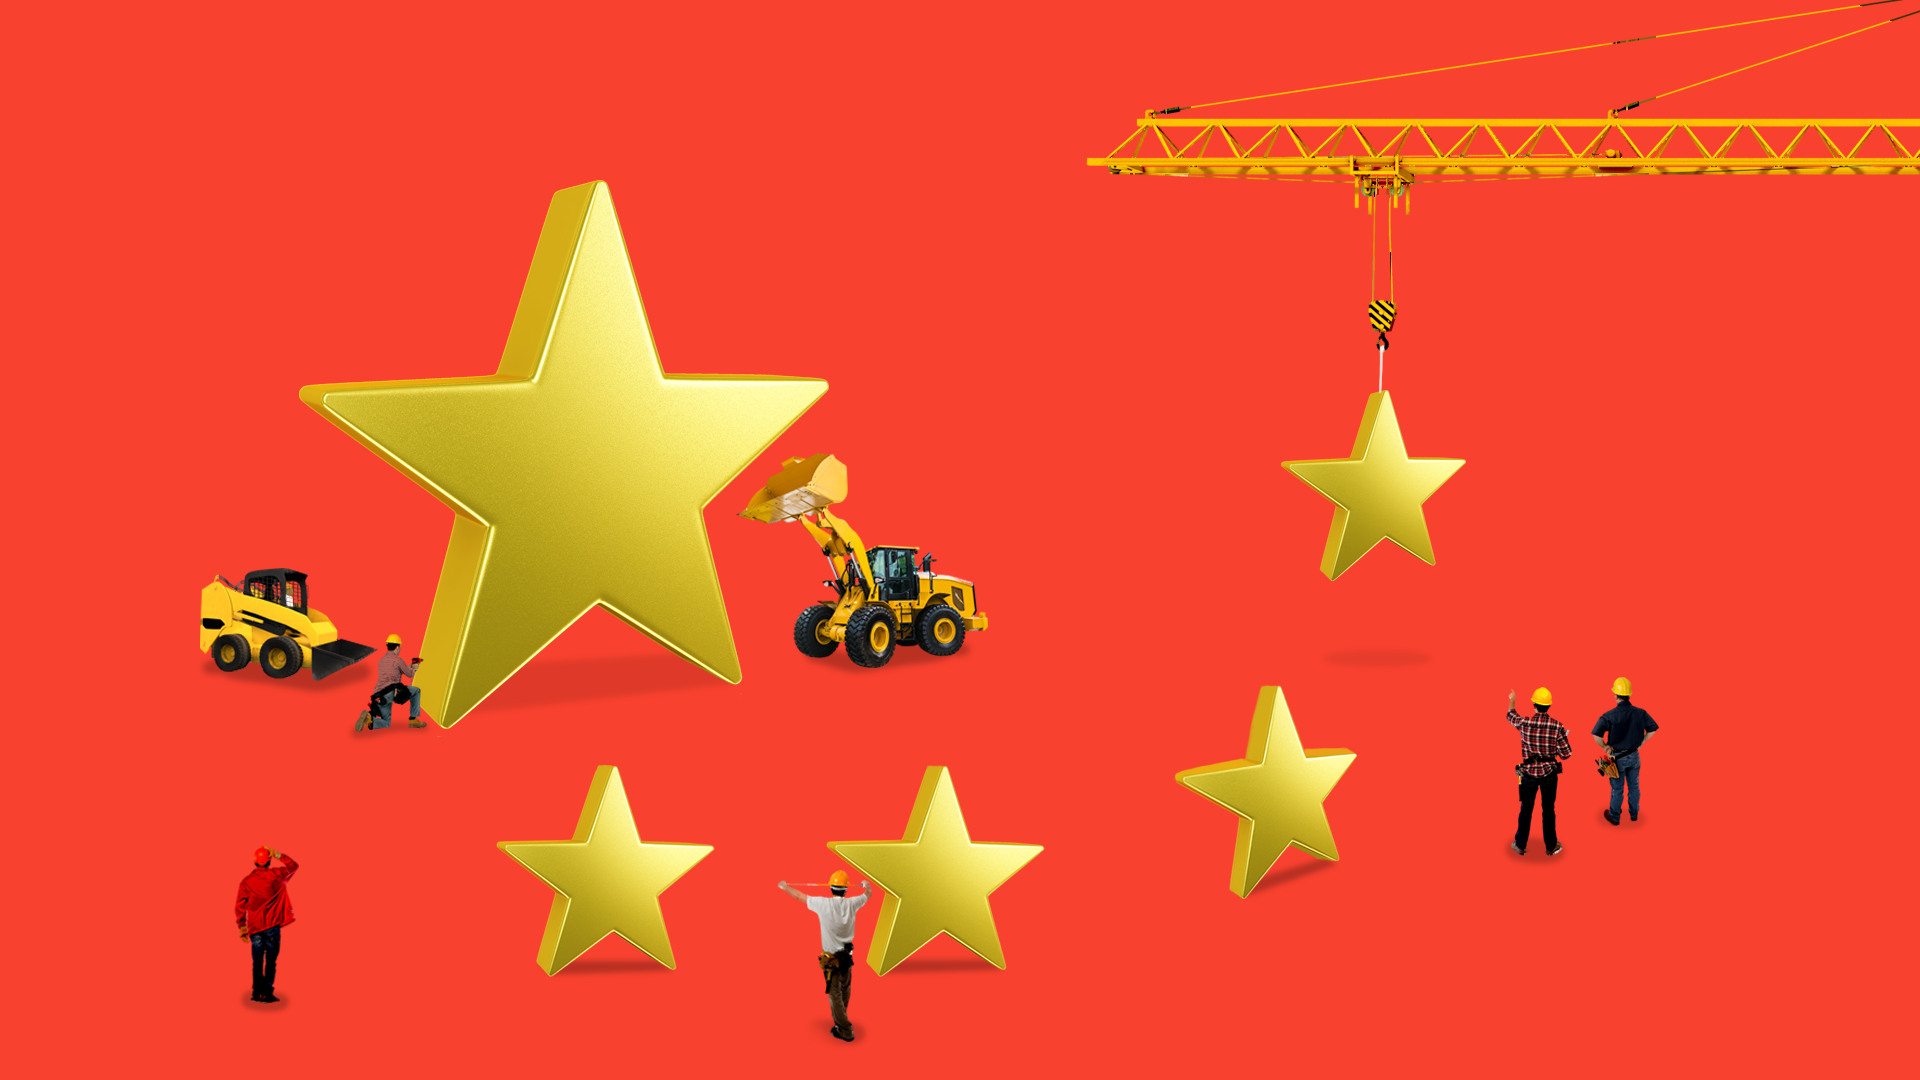 Illustration of the Chinese flag with construction crews working on it